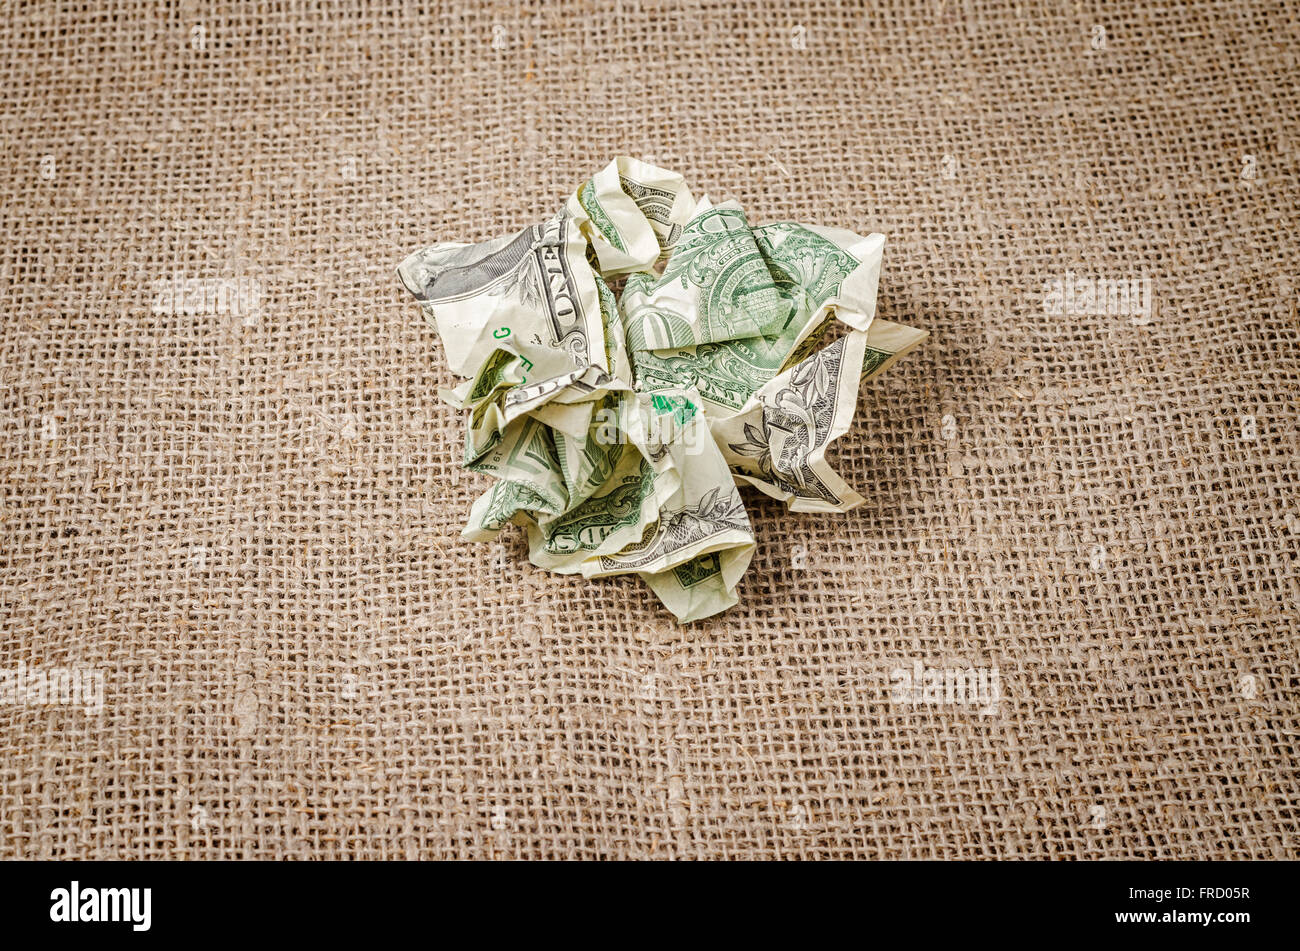 US dollar banknotes crumpled on rustic jute background - Stock Image